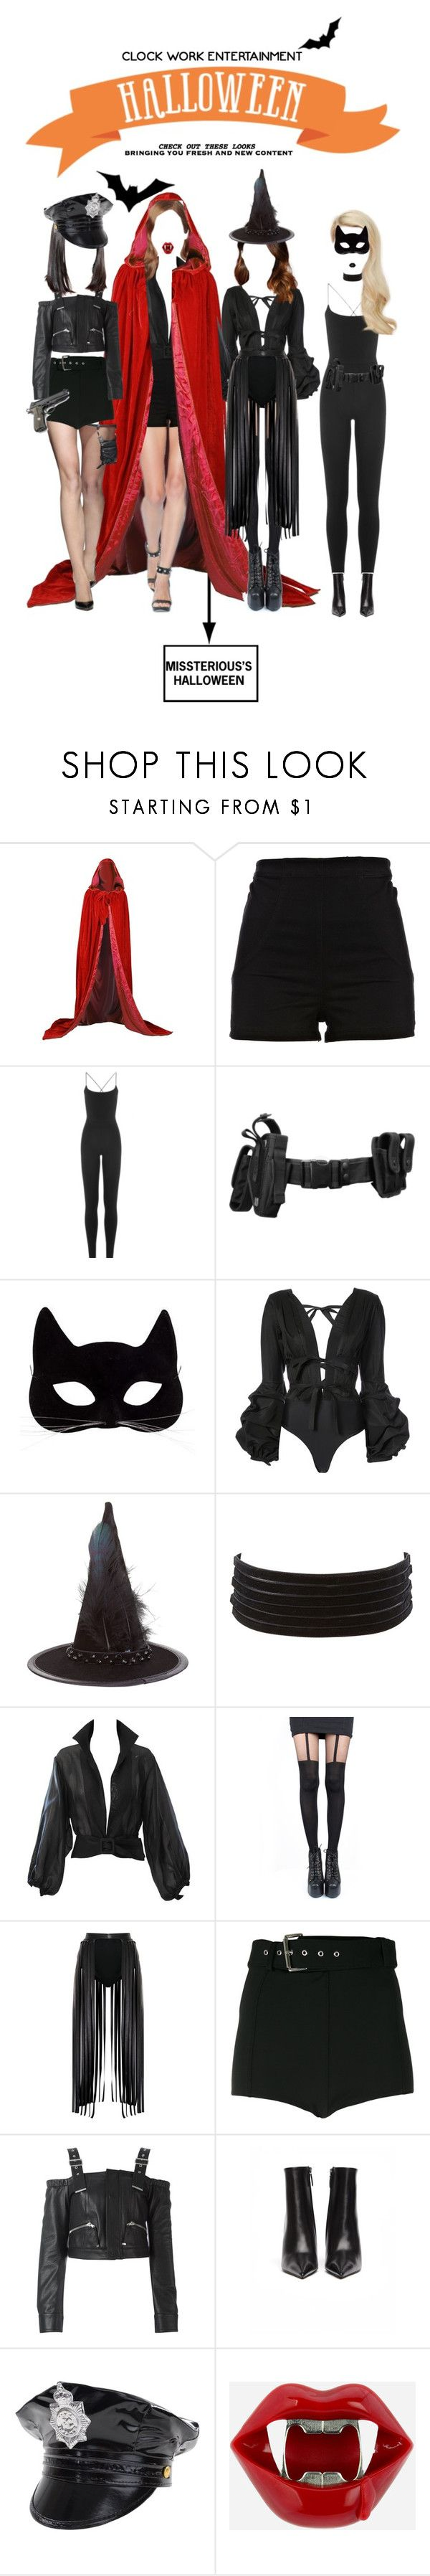 """""""«CLOCK WORK HALLOWEEN - MISSTERIOUS'S COSTUMES»"""" by cw-entertainment ❤ liked on Polyvore featuring River Island, Valentino, Johanna Ortiz, Accessorize, Charlotte Russe, YSL RIVE GAUCHE, Pretty Polly, Versus, Diesel Black Gold and Balenciaga"""